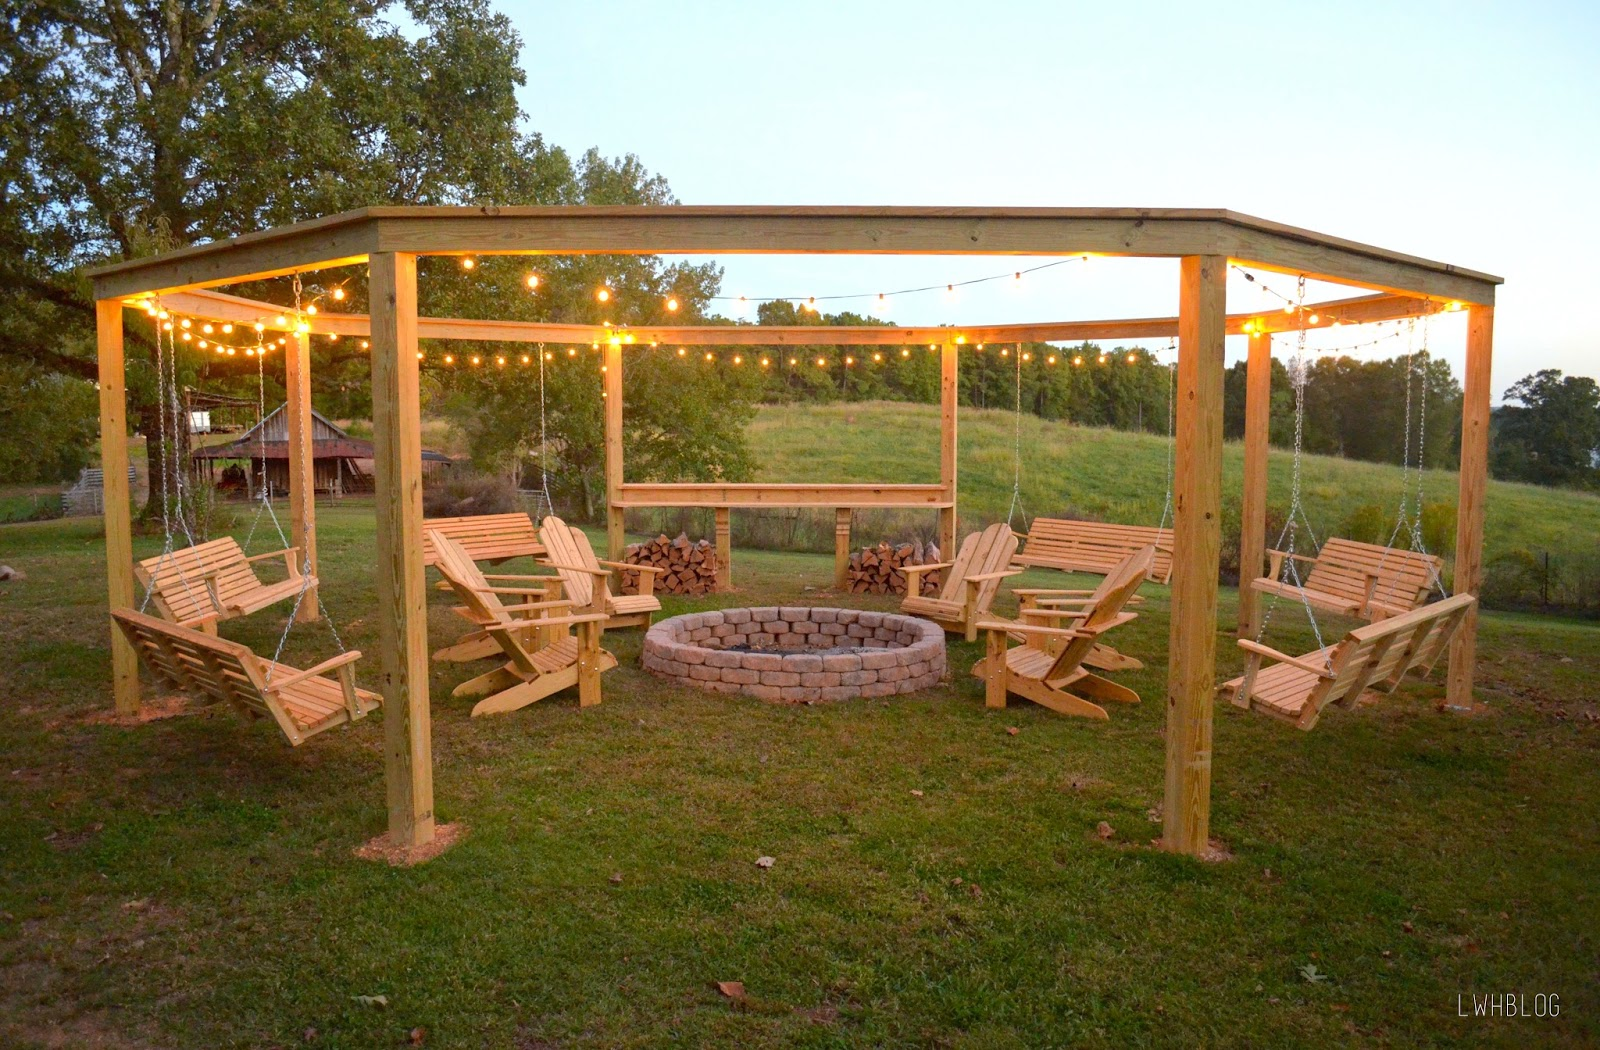 Remodelaholic tutorial build an amazing diy pergola and firepit how to build a pergola with a fire pit by little white house blog featured on solutioingenieria